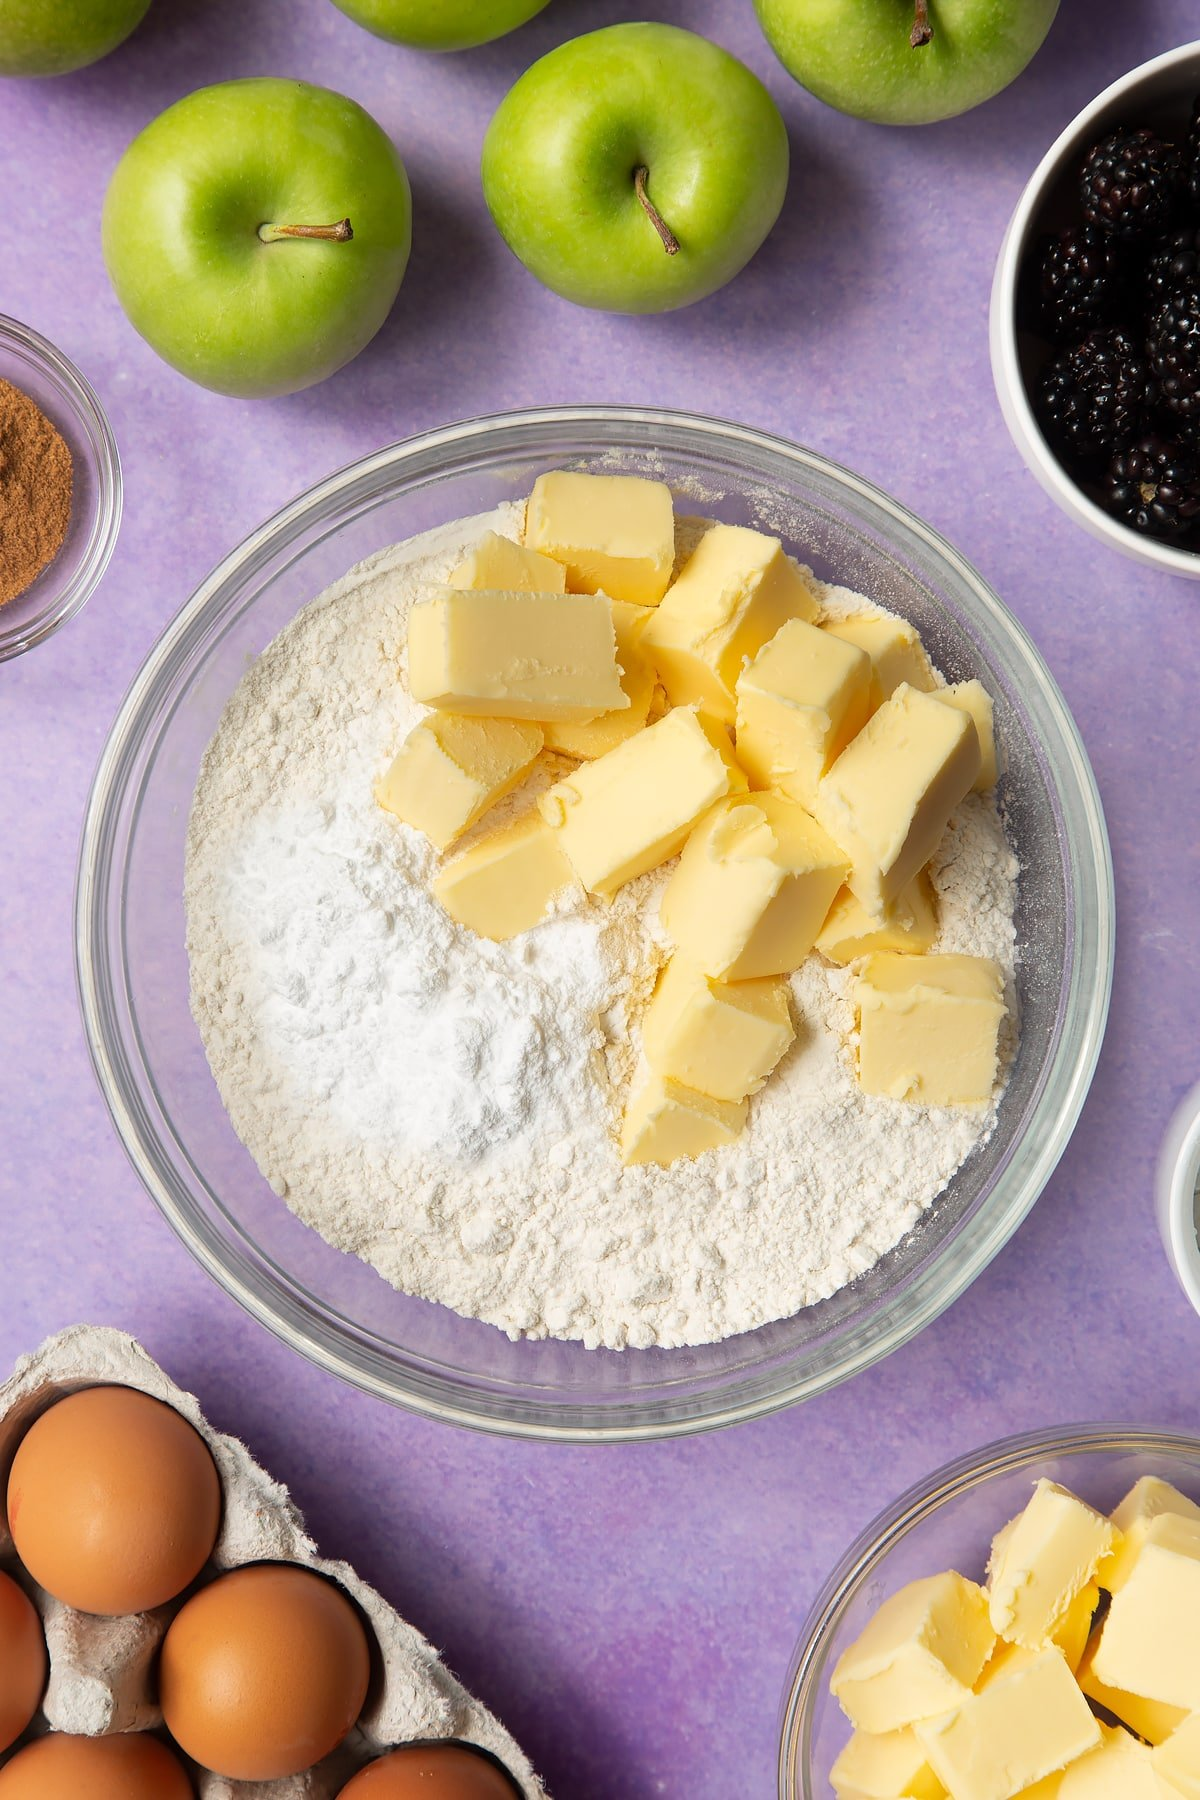 Flour, icing sugar and butter in a glass mixing bowl. Ingredients to make apple and blackberry pie surround the bowl.